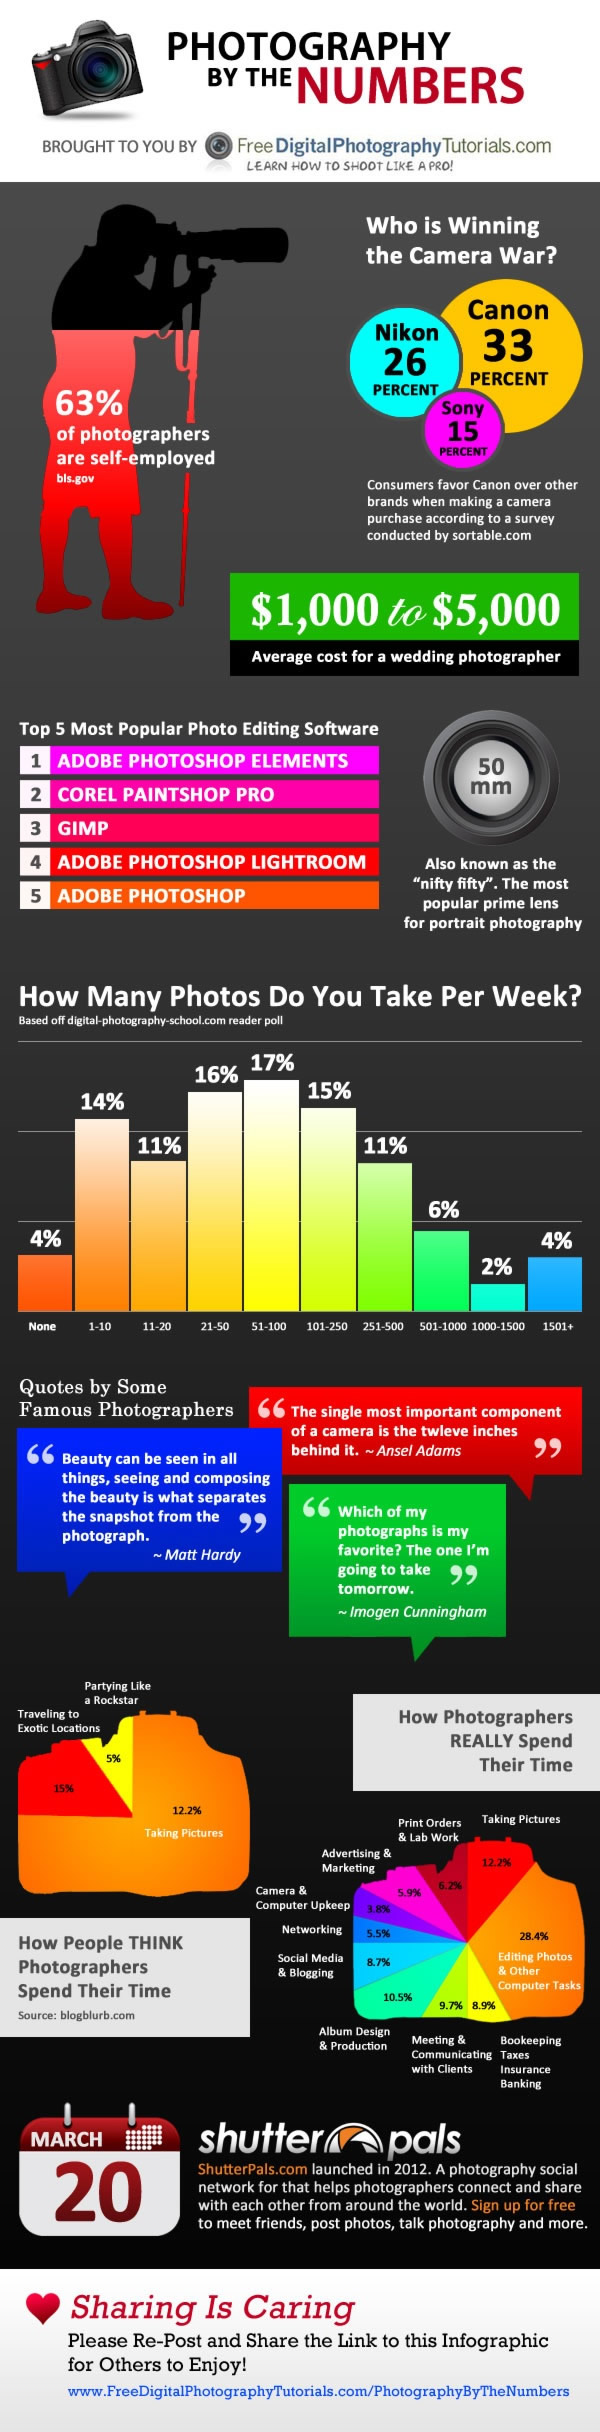 Photography by the Numbers